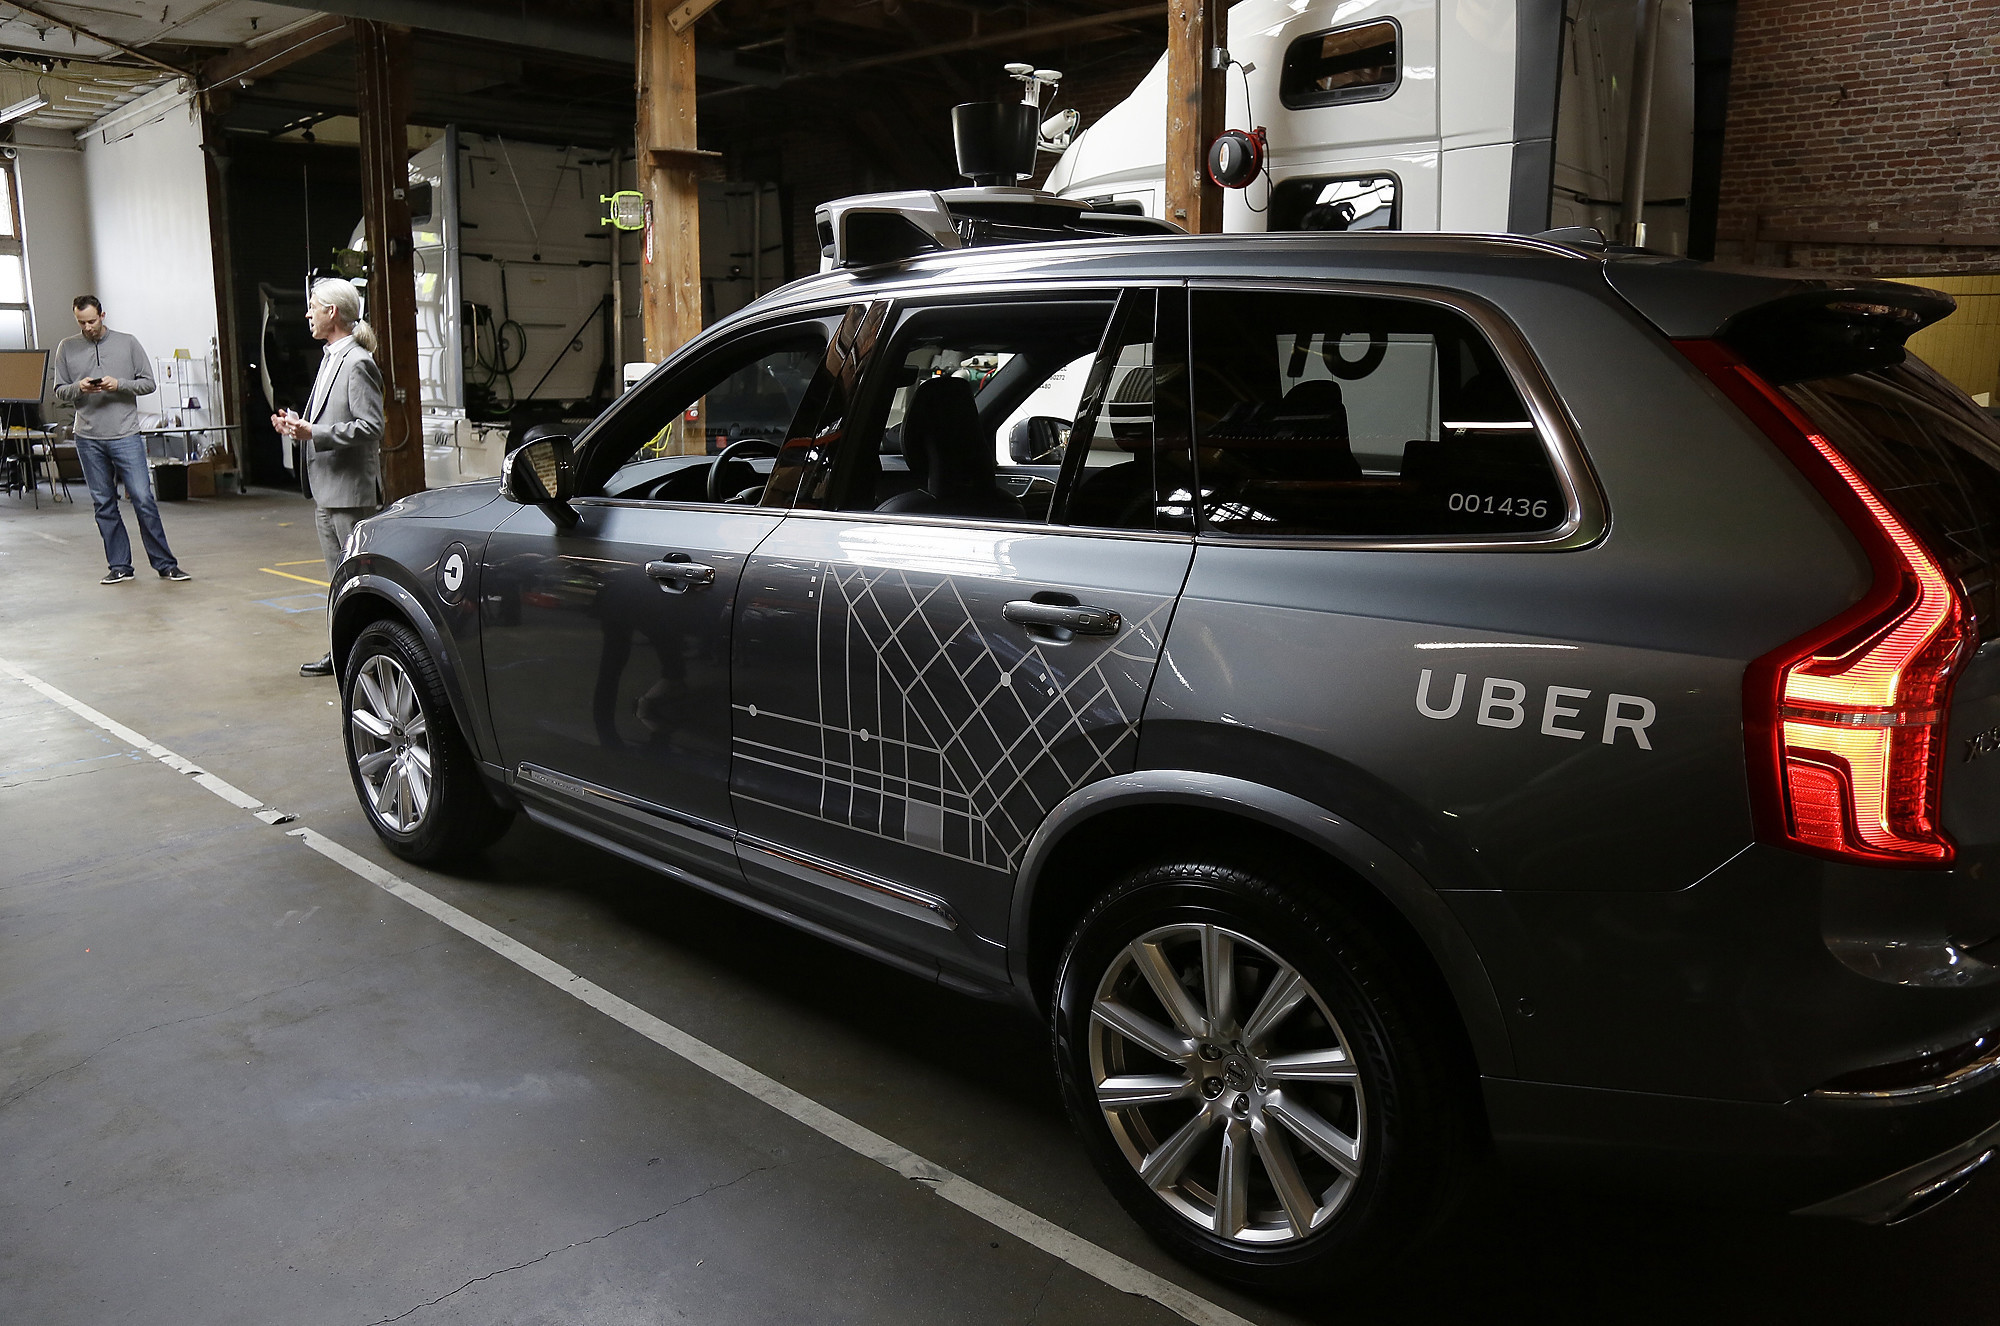 Uber suspends its self-driving car tests after one of its SUVs was struck in Arizona